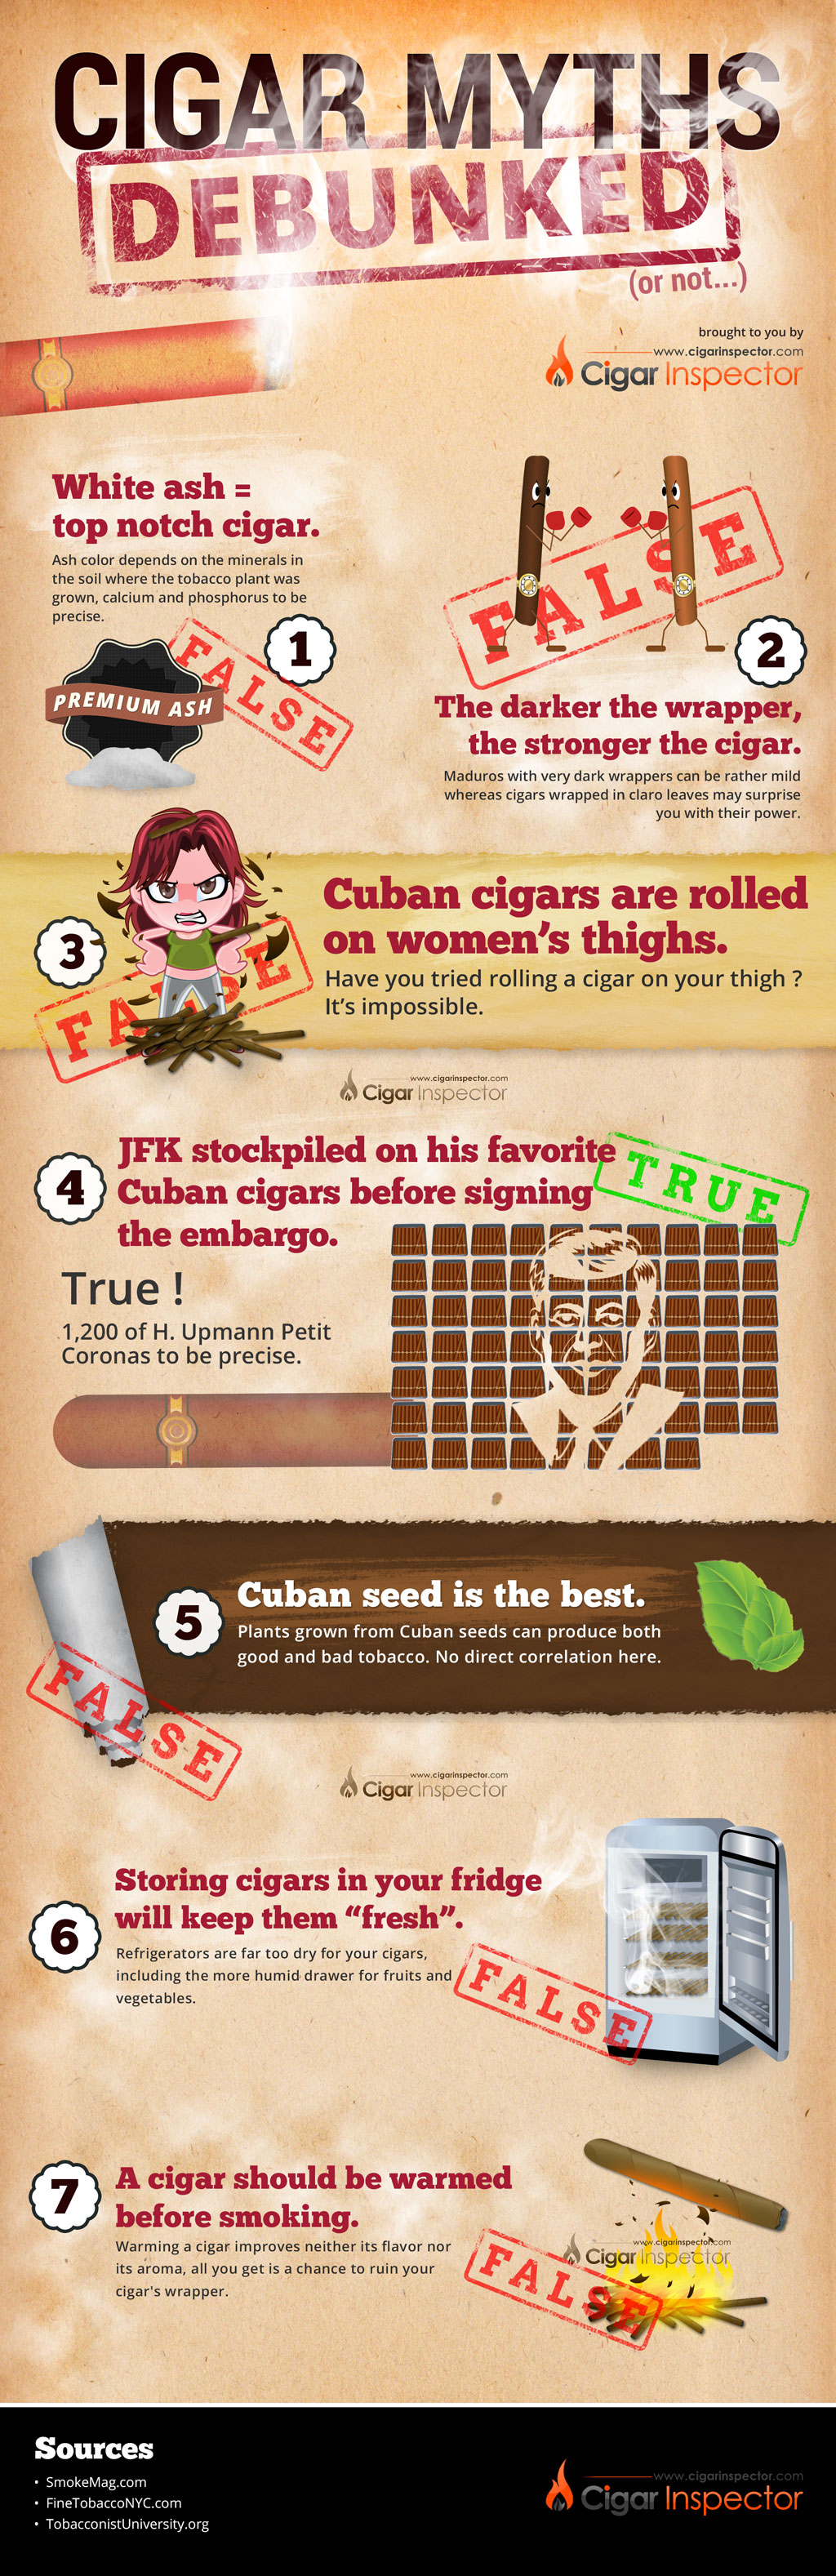 7 Cigar Myths Debunked (or not…)